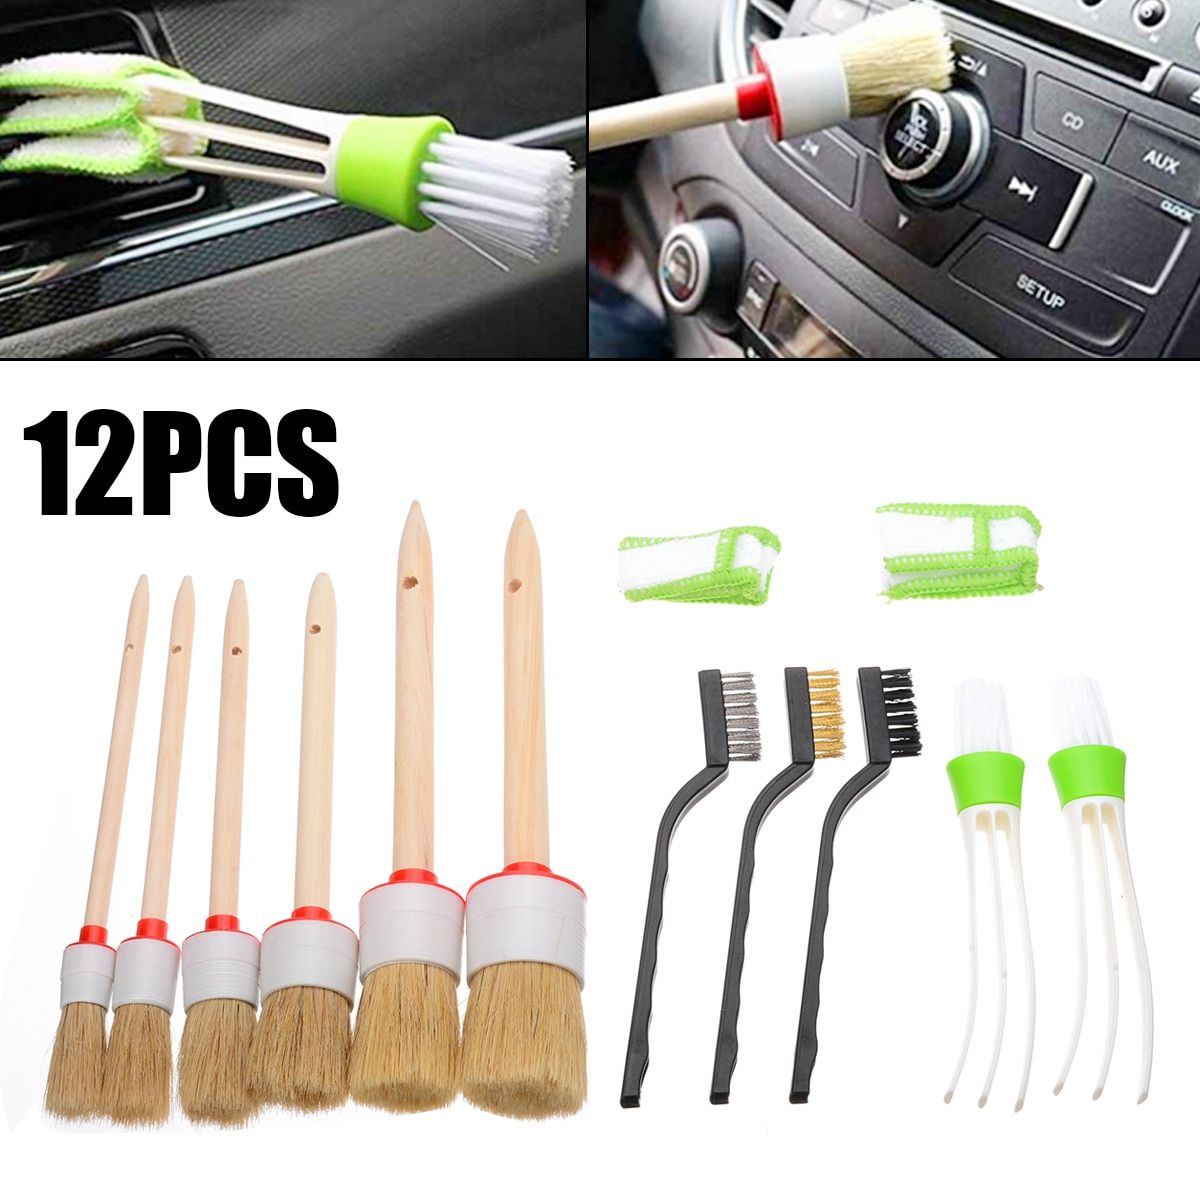 11pcs/set Car Detailing Brush Kit Vehicle Interior Air